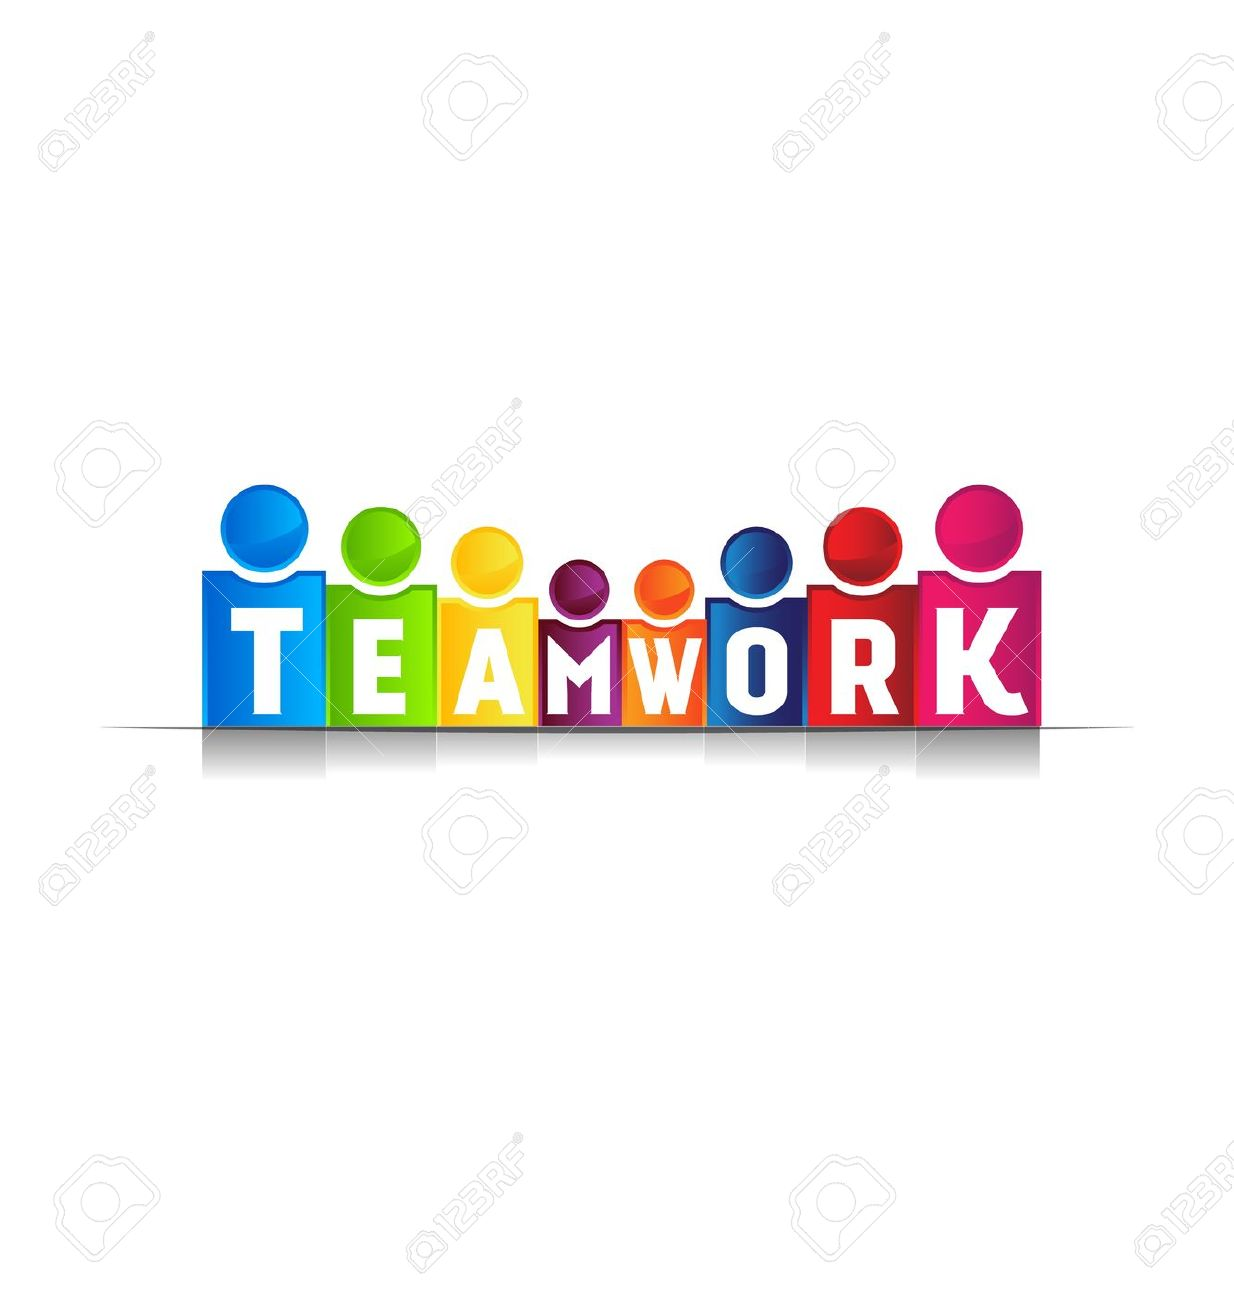 Best Teamwork Clipart #13485 - Clipartion.com: https://clipartion.com/free-clipart-13485